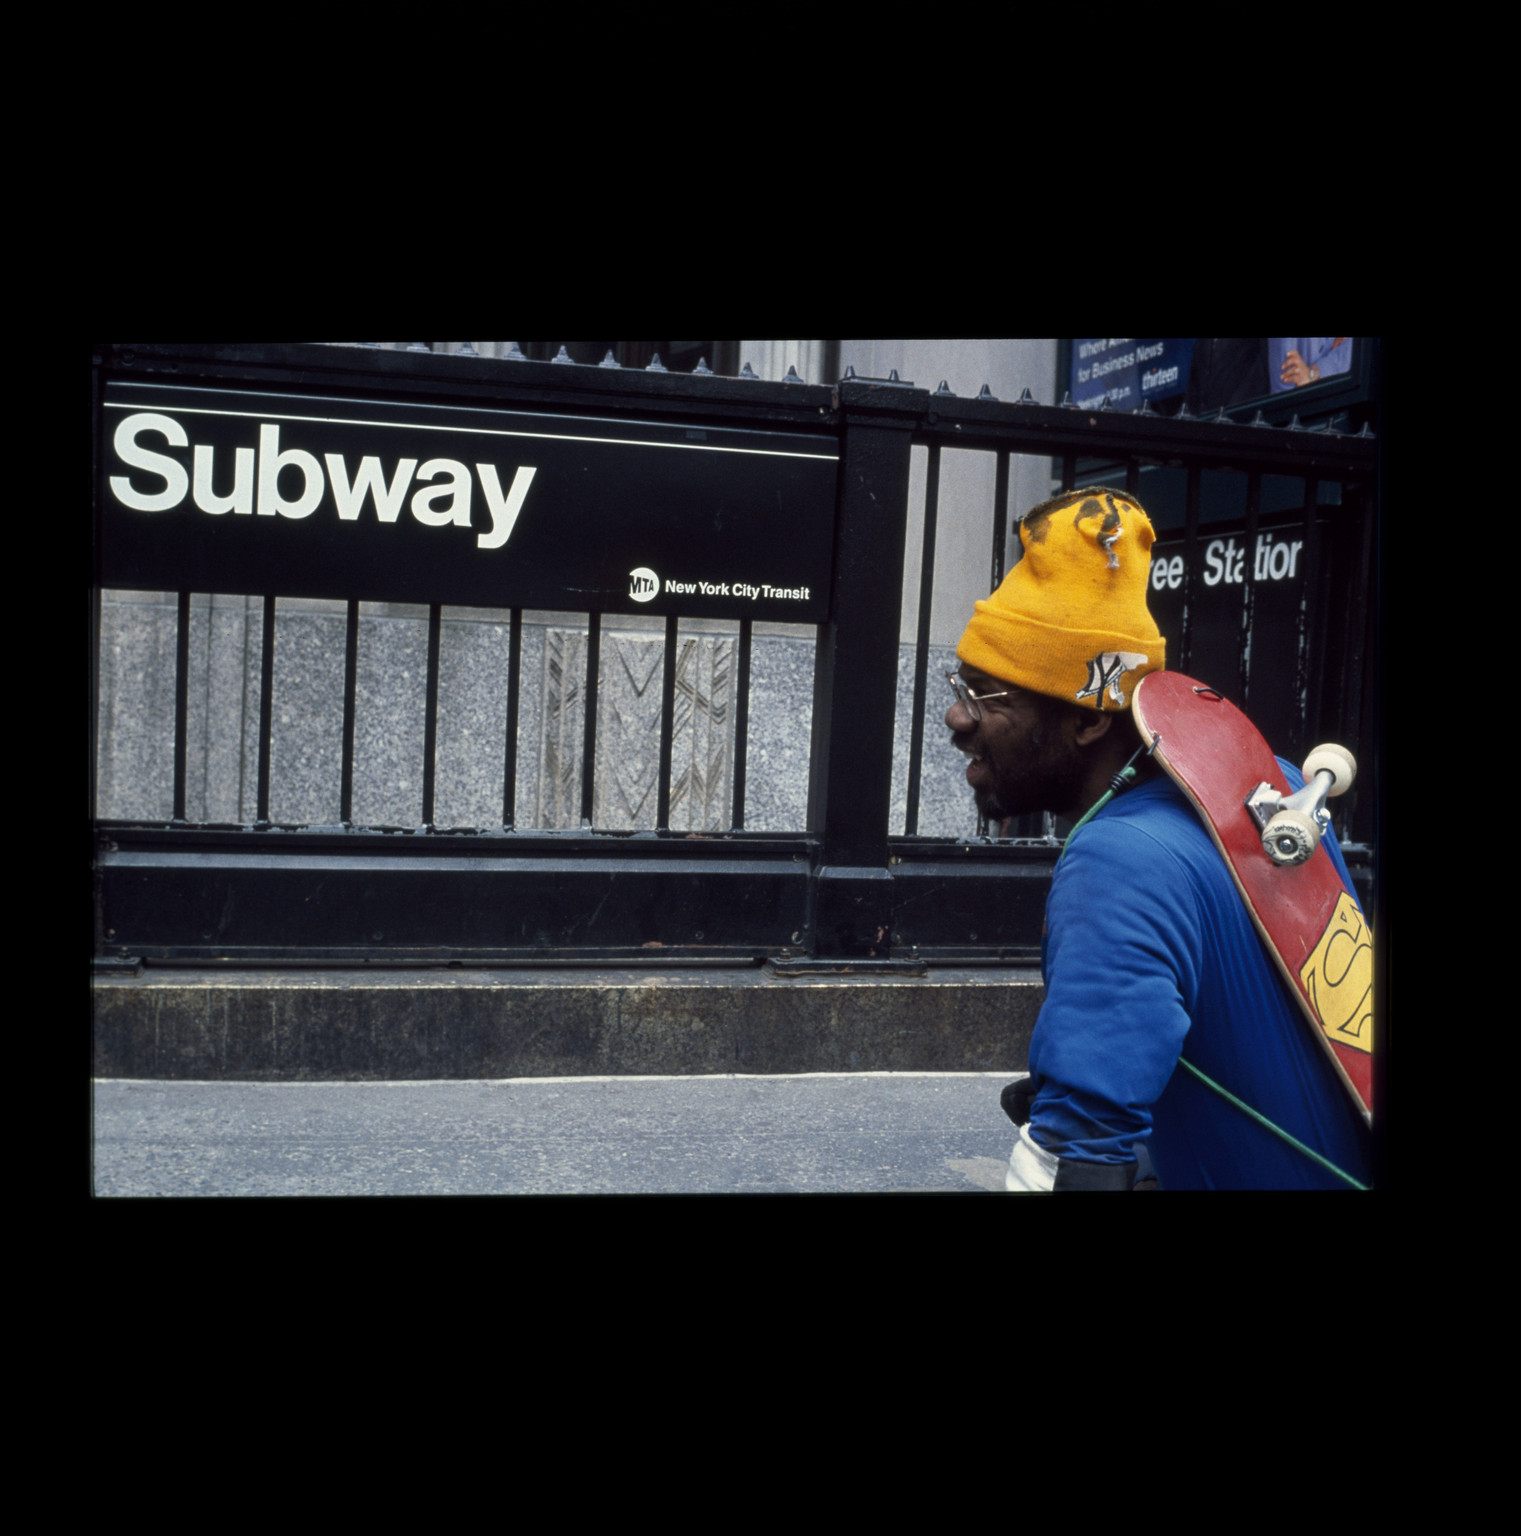 "Pope.L (American, born 1955). The Great White Way: 22 miles, 9 years, 1 street, Broadway, New York. 2001-09. Inkjet print, 10 × 15"" (25.4 × 38.1 cm). The Museum of Modern Art, New York. Acquired in part through the generosity of Jill and Peter Kraus, Anne and Joel S. Ehrenkranz, The Contemporary Arts Council of The Museum of Modern Art, The Jill and Peter Kraus Media and Performance Acquisition Fund, and Jill and Peter Kraus in honor of Michael Lynne. © Pope.L, courtesy the artist"